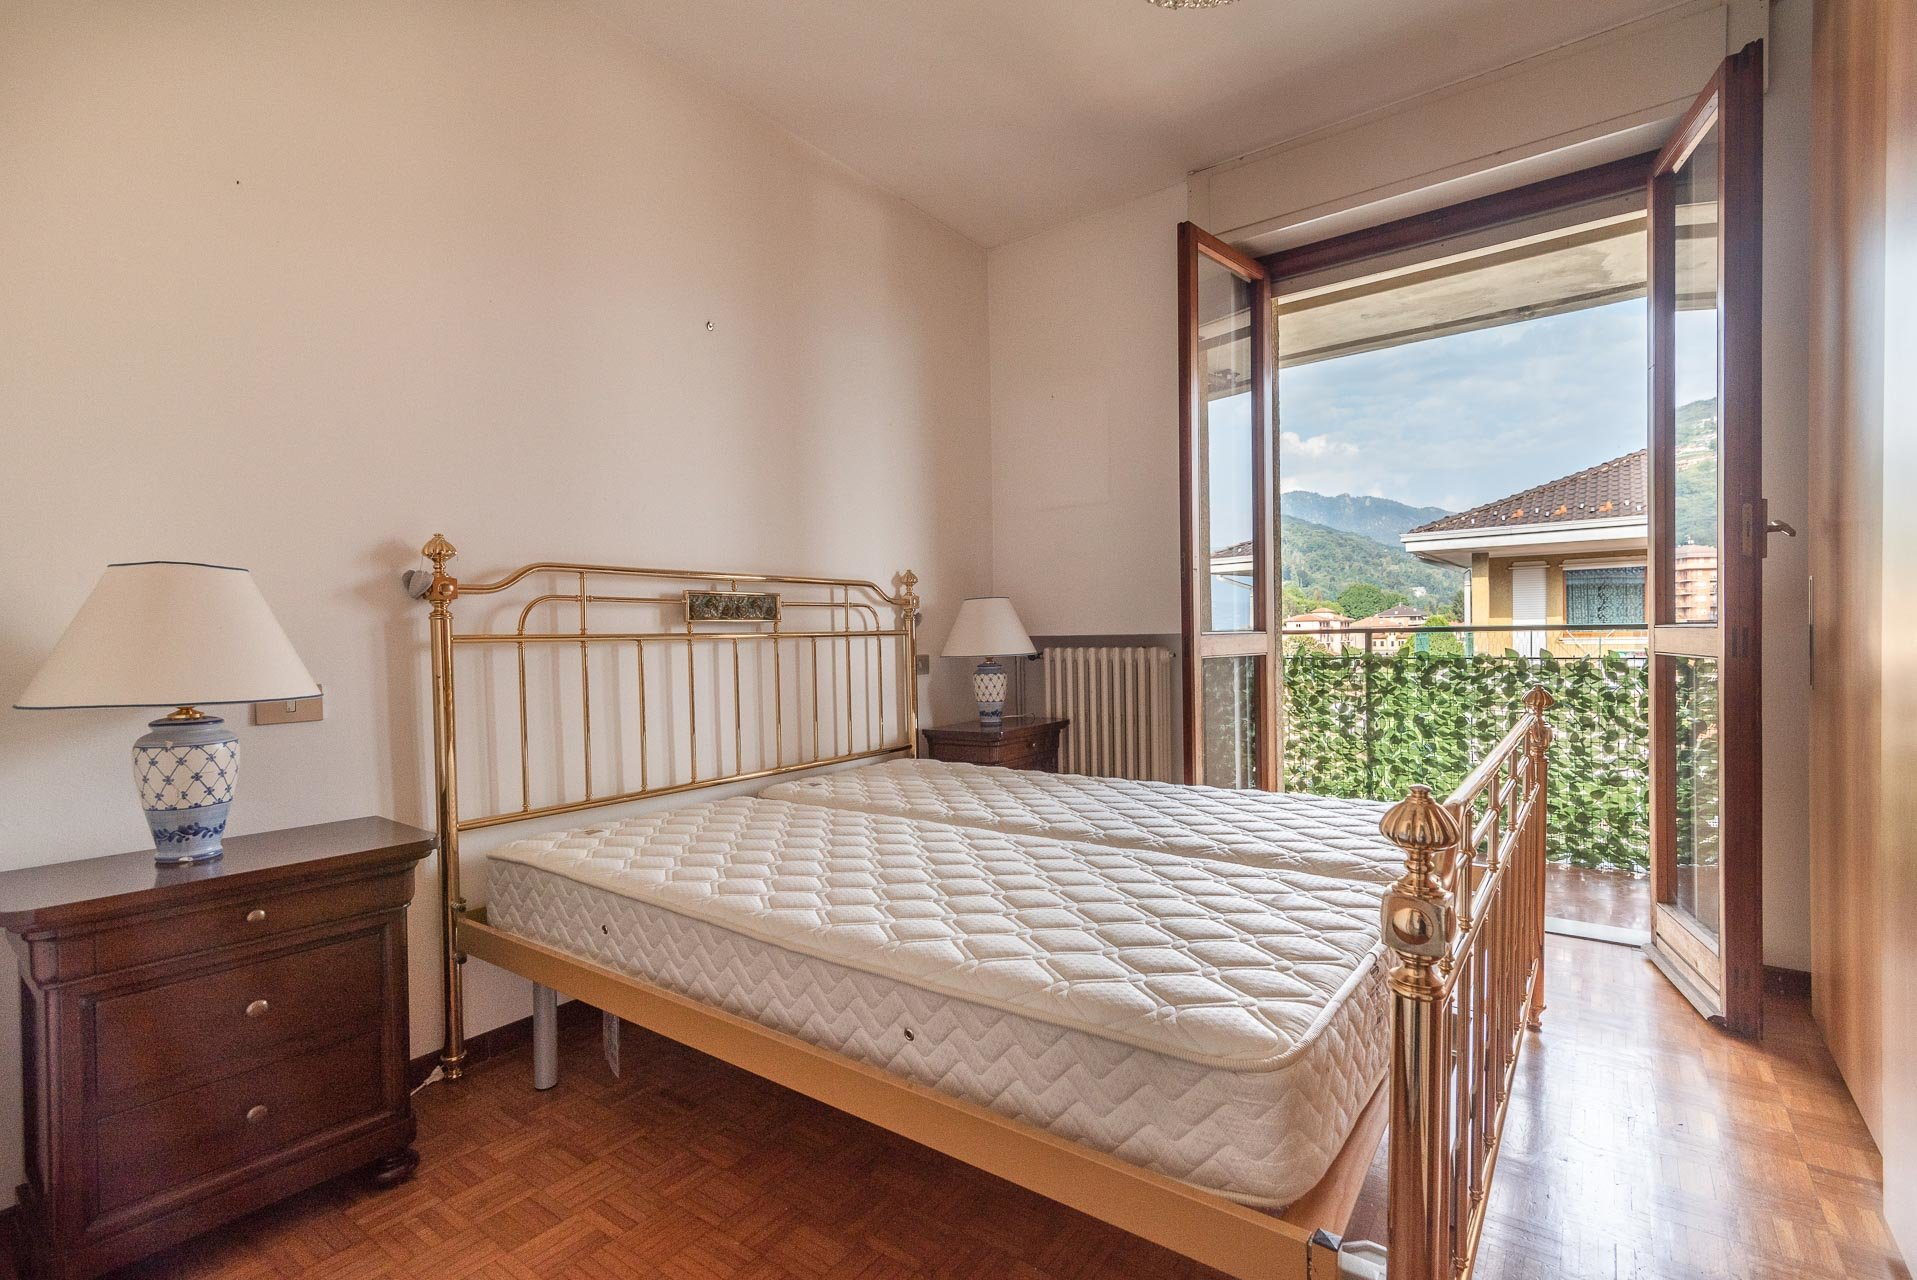 Apartment for rent in Stresa - double bedroom